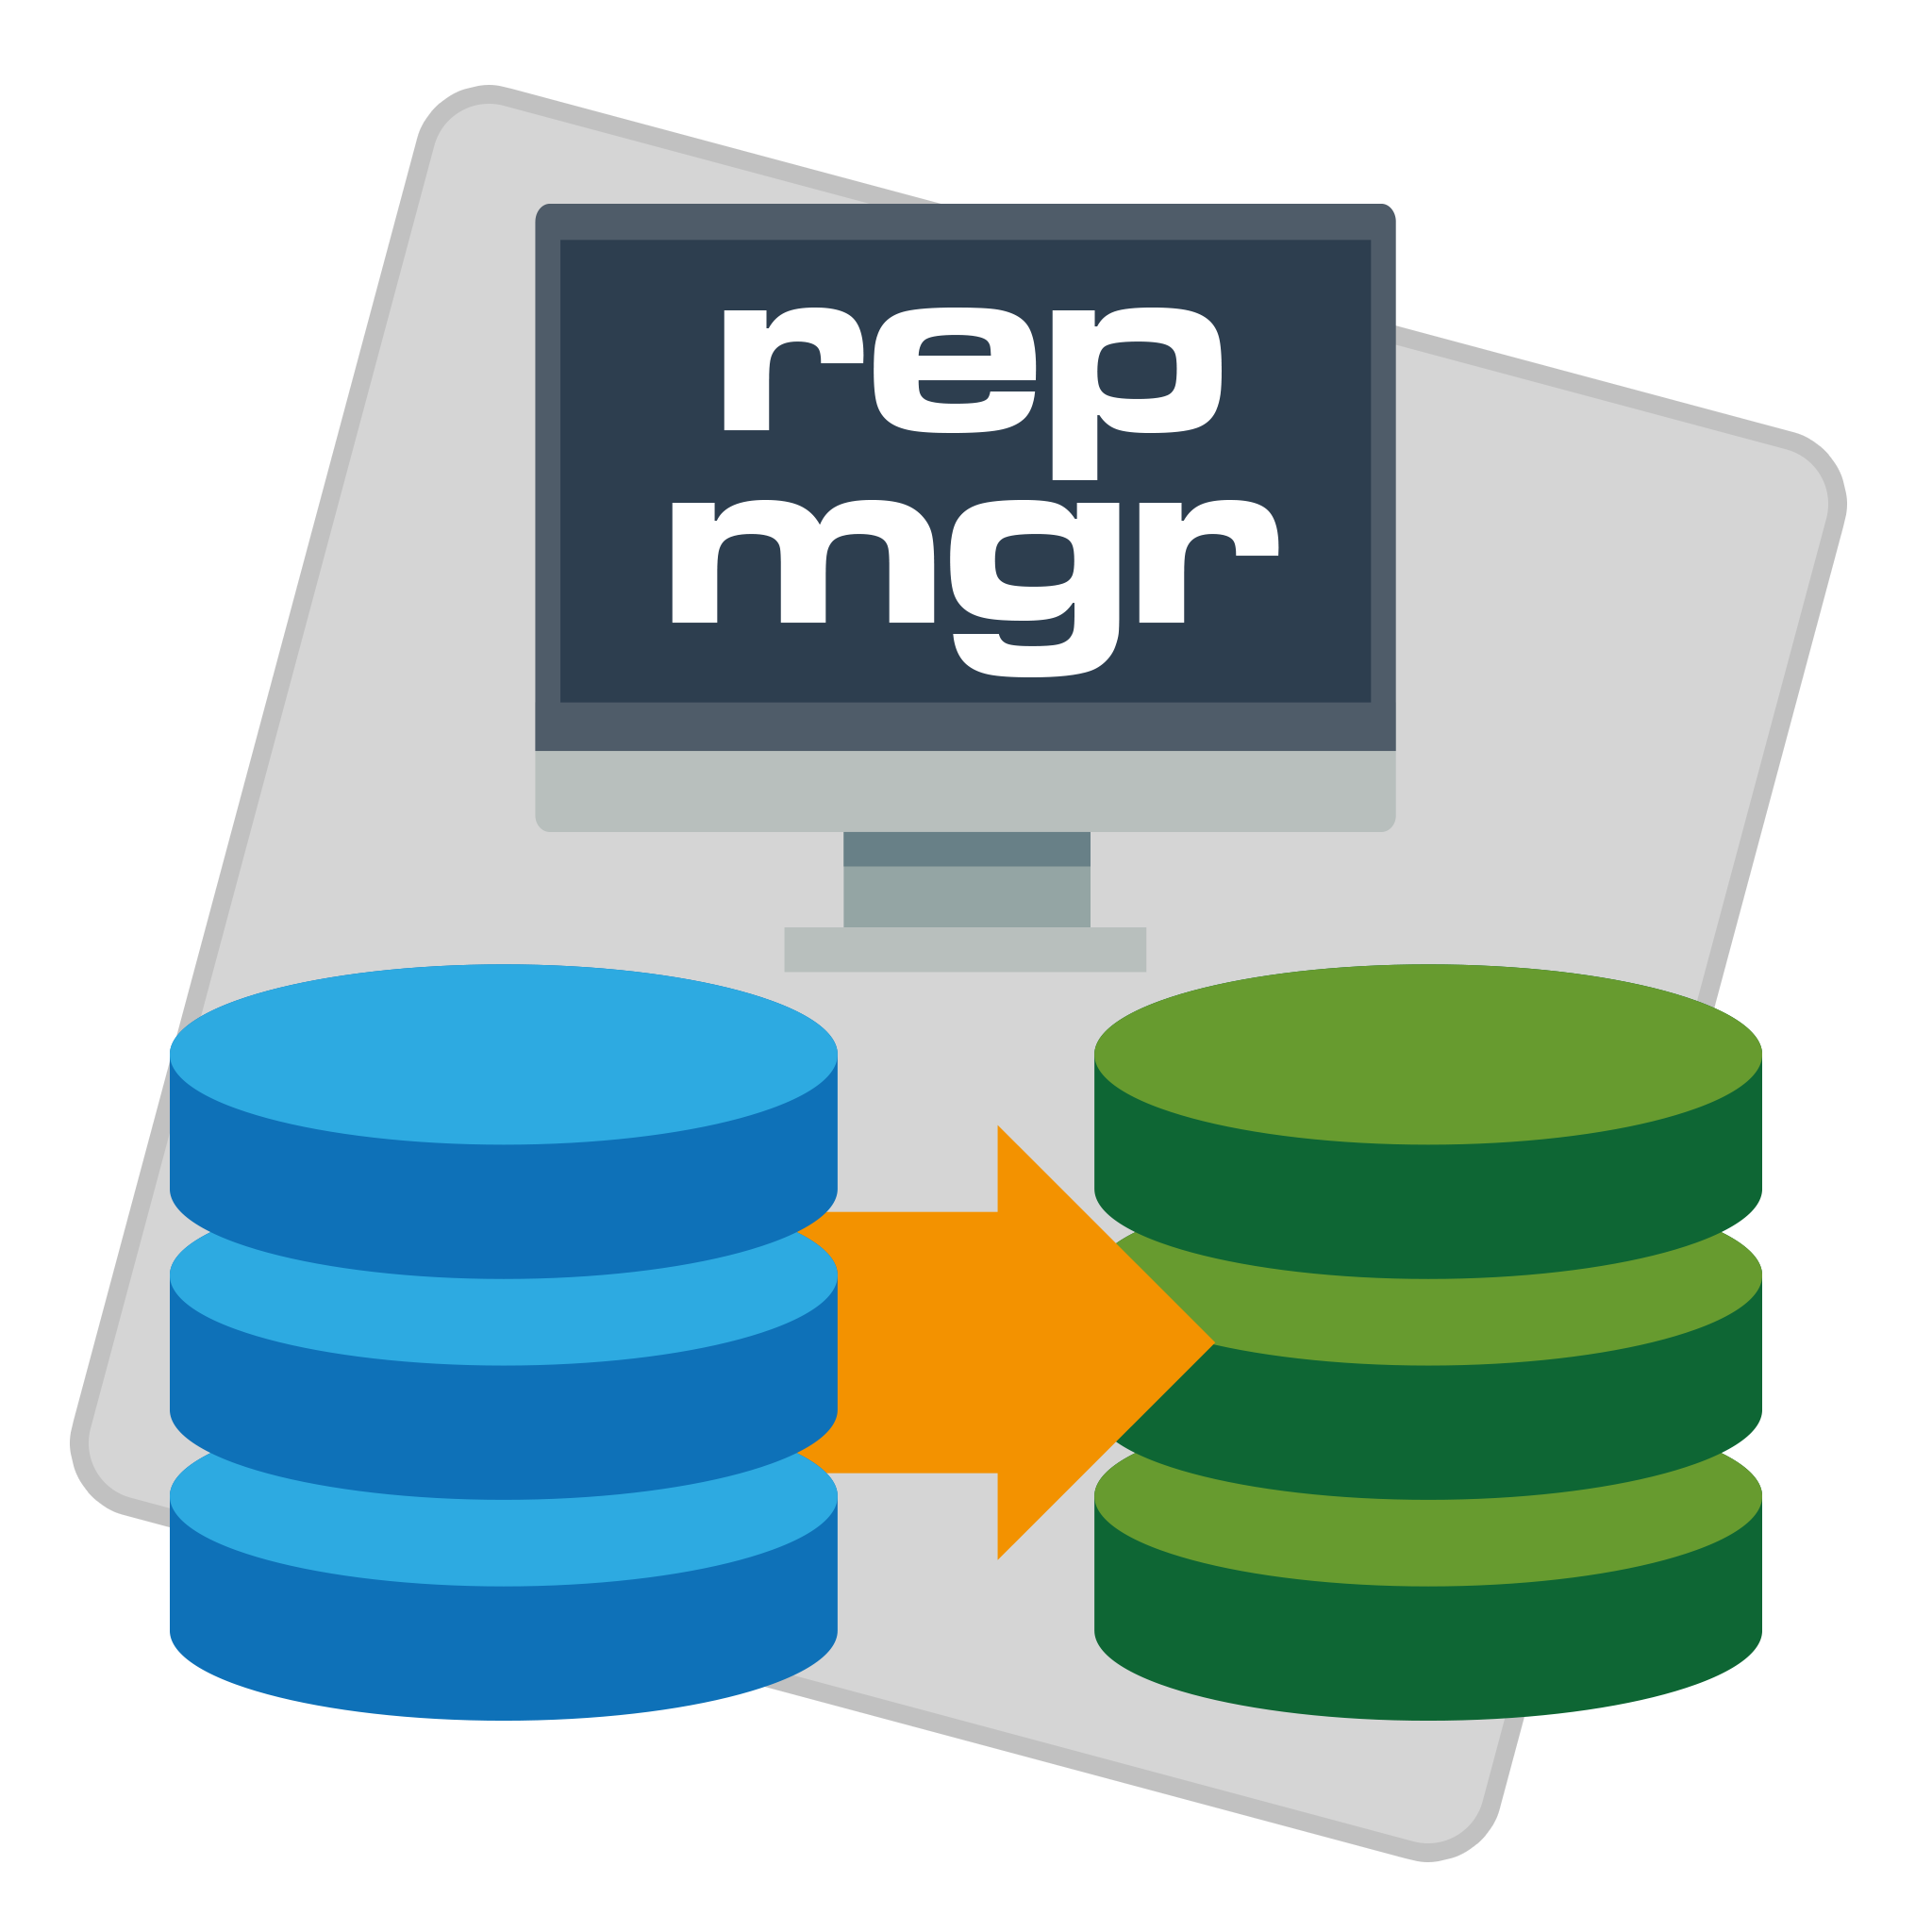 repmgr PostgreSQL tool, repmgr PostgreSQL replication and failover management tool